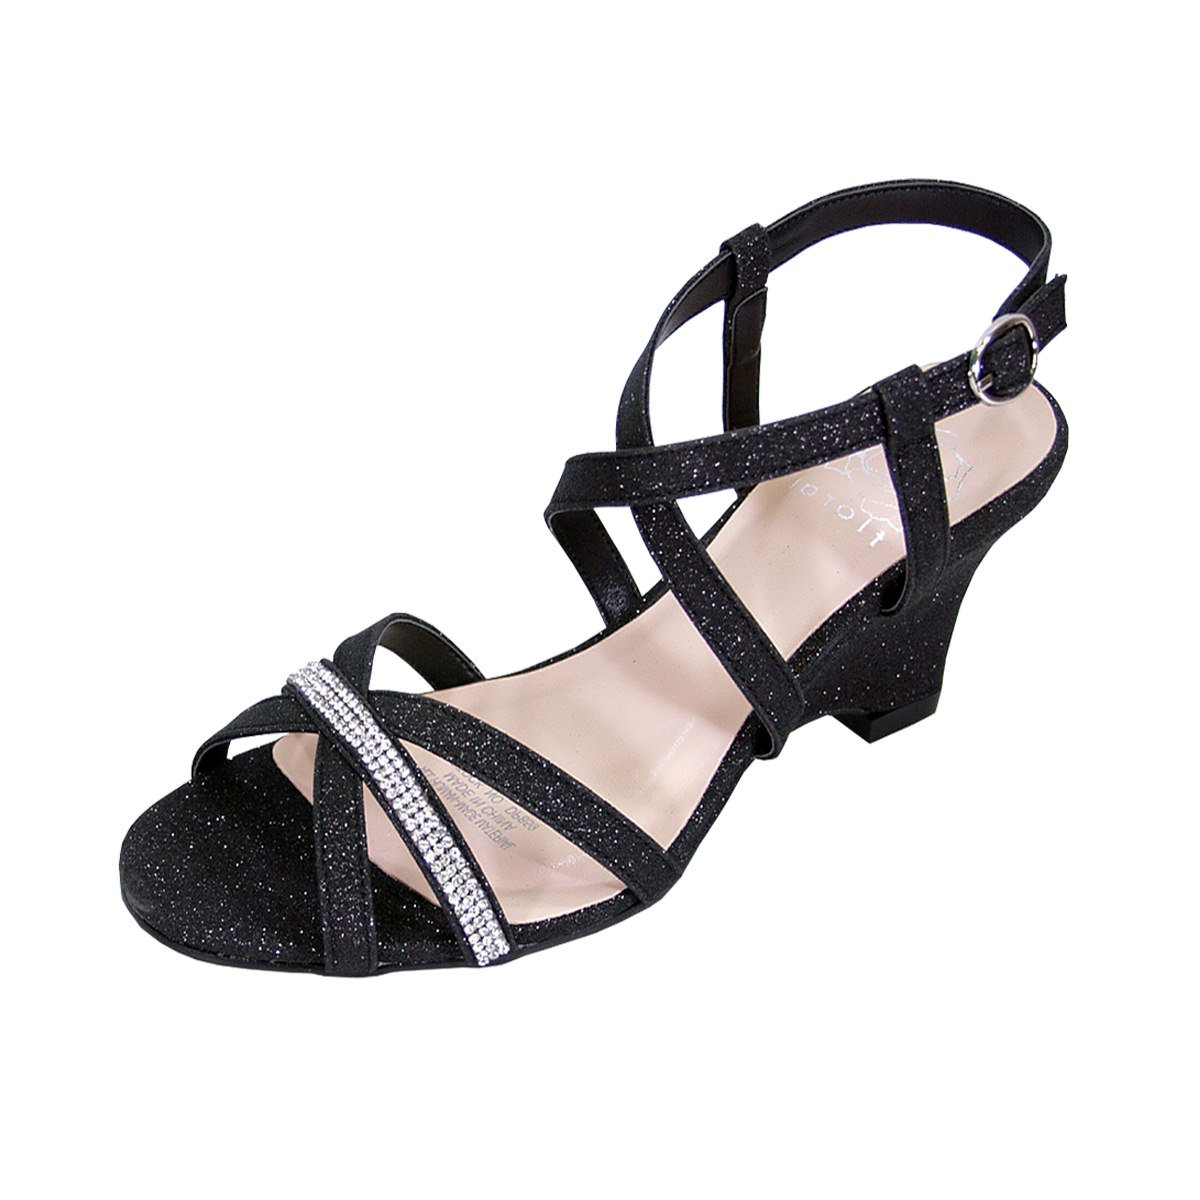 Floral Joanne Women Wide Width Chic Rhinestone Strappy Wedge Party Heeled Sandals (Size/Measurement) B079C3WLXT 7 E|Black